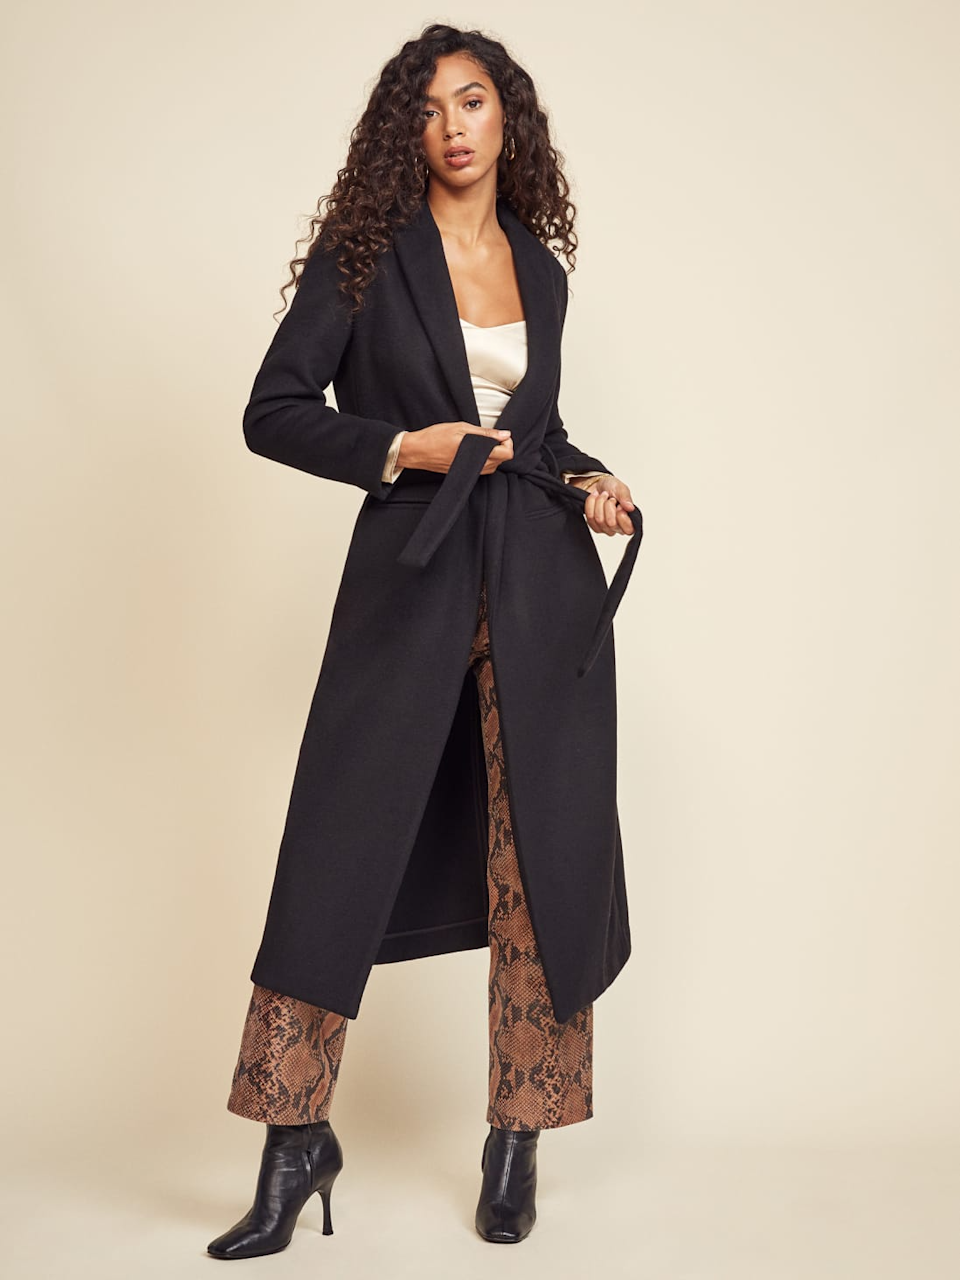 """<br><br><strong>Reformation</strong> Greenwich Coat, $, available at <a href=""""https://go.skimresources.com/?id=30283X879131&url=https%3A%2F%2Fwww.thereformation.com%2Fproducts%2Fgreenwich-coat"""" rel=""""nofollow noopener"""" target=""""_blank"""" data-ylk=""""slk:Reformation"""" class=""""link rapid-noclick-resp"""">Reformation</a>"""